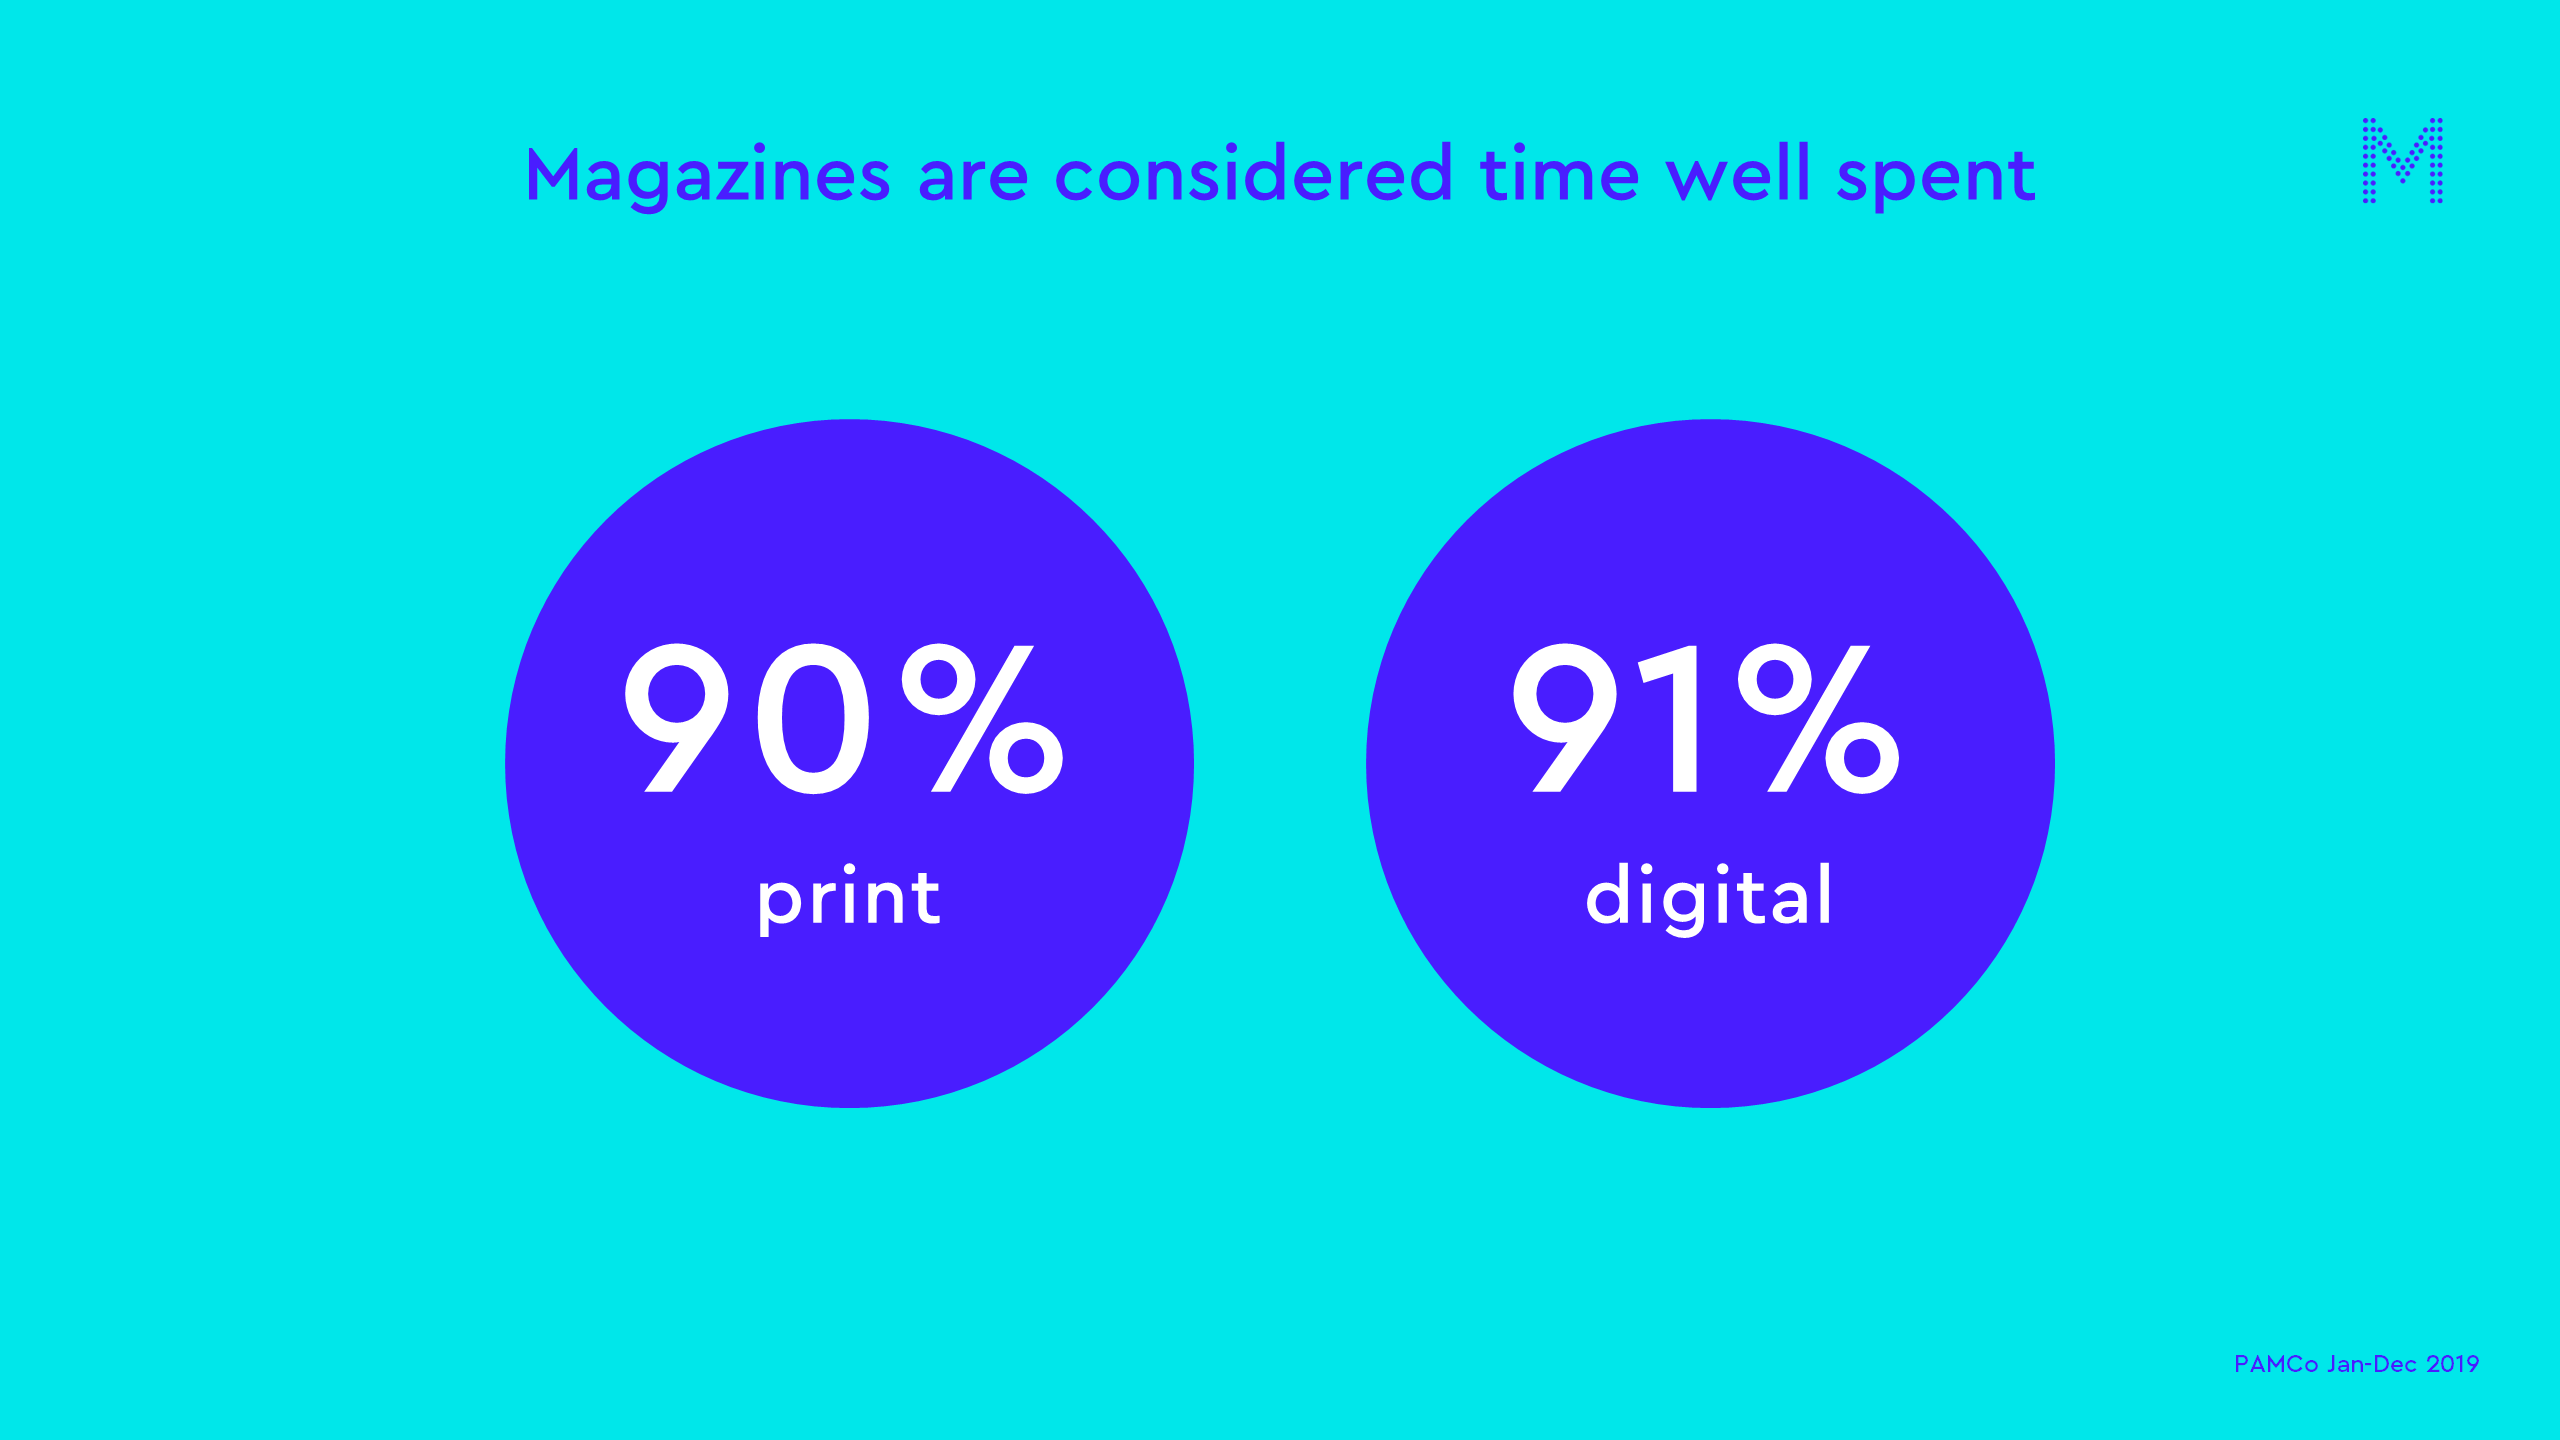 Magazines are considered time well spent